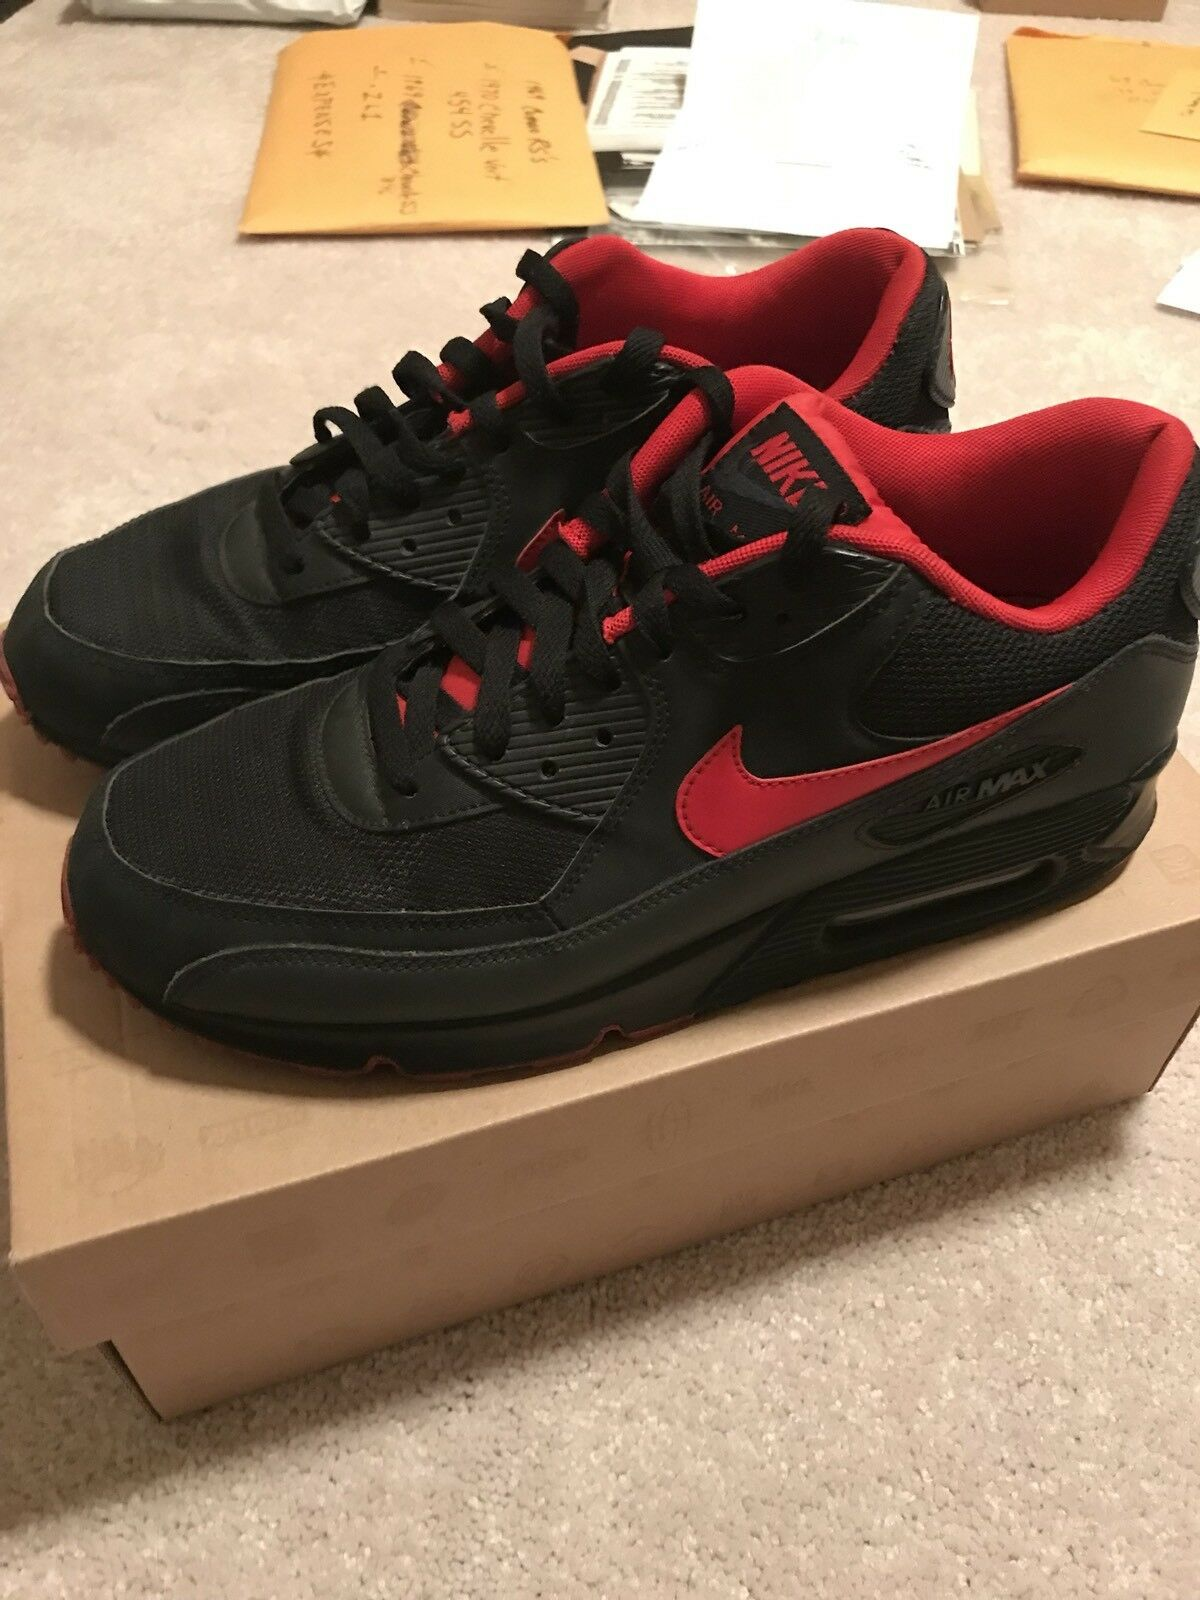 NIKE AIR MAX 90 RARE BLACK-UNIVERSITY RED-ANTHRACITE-GREY SZ 10.5-325018-069-